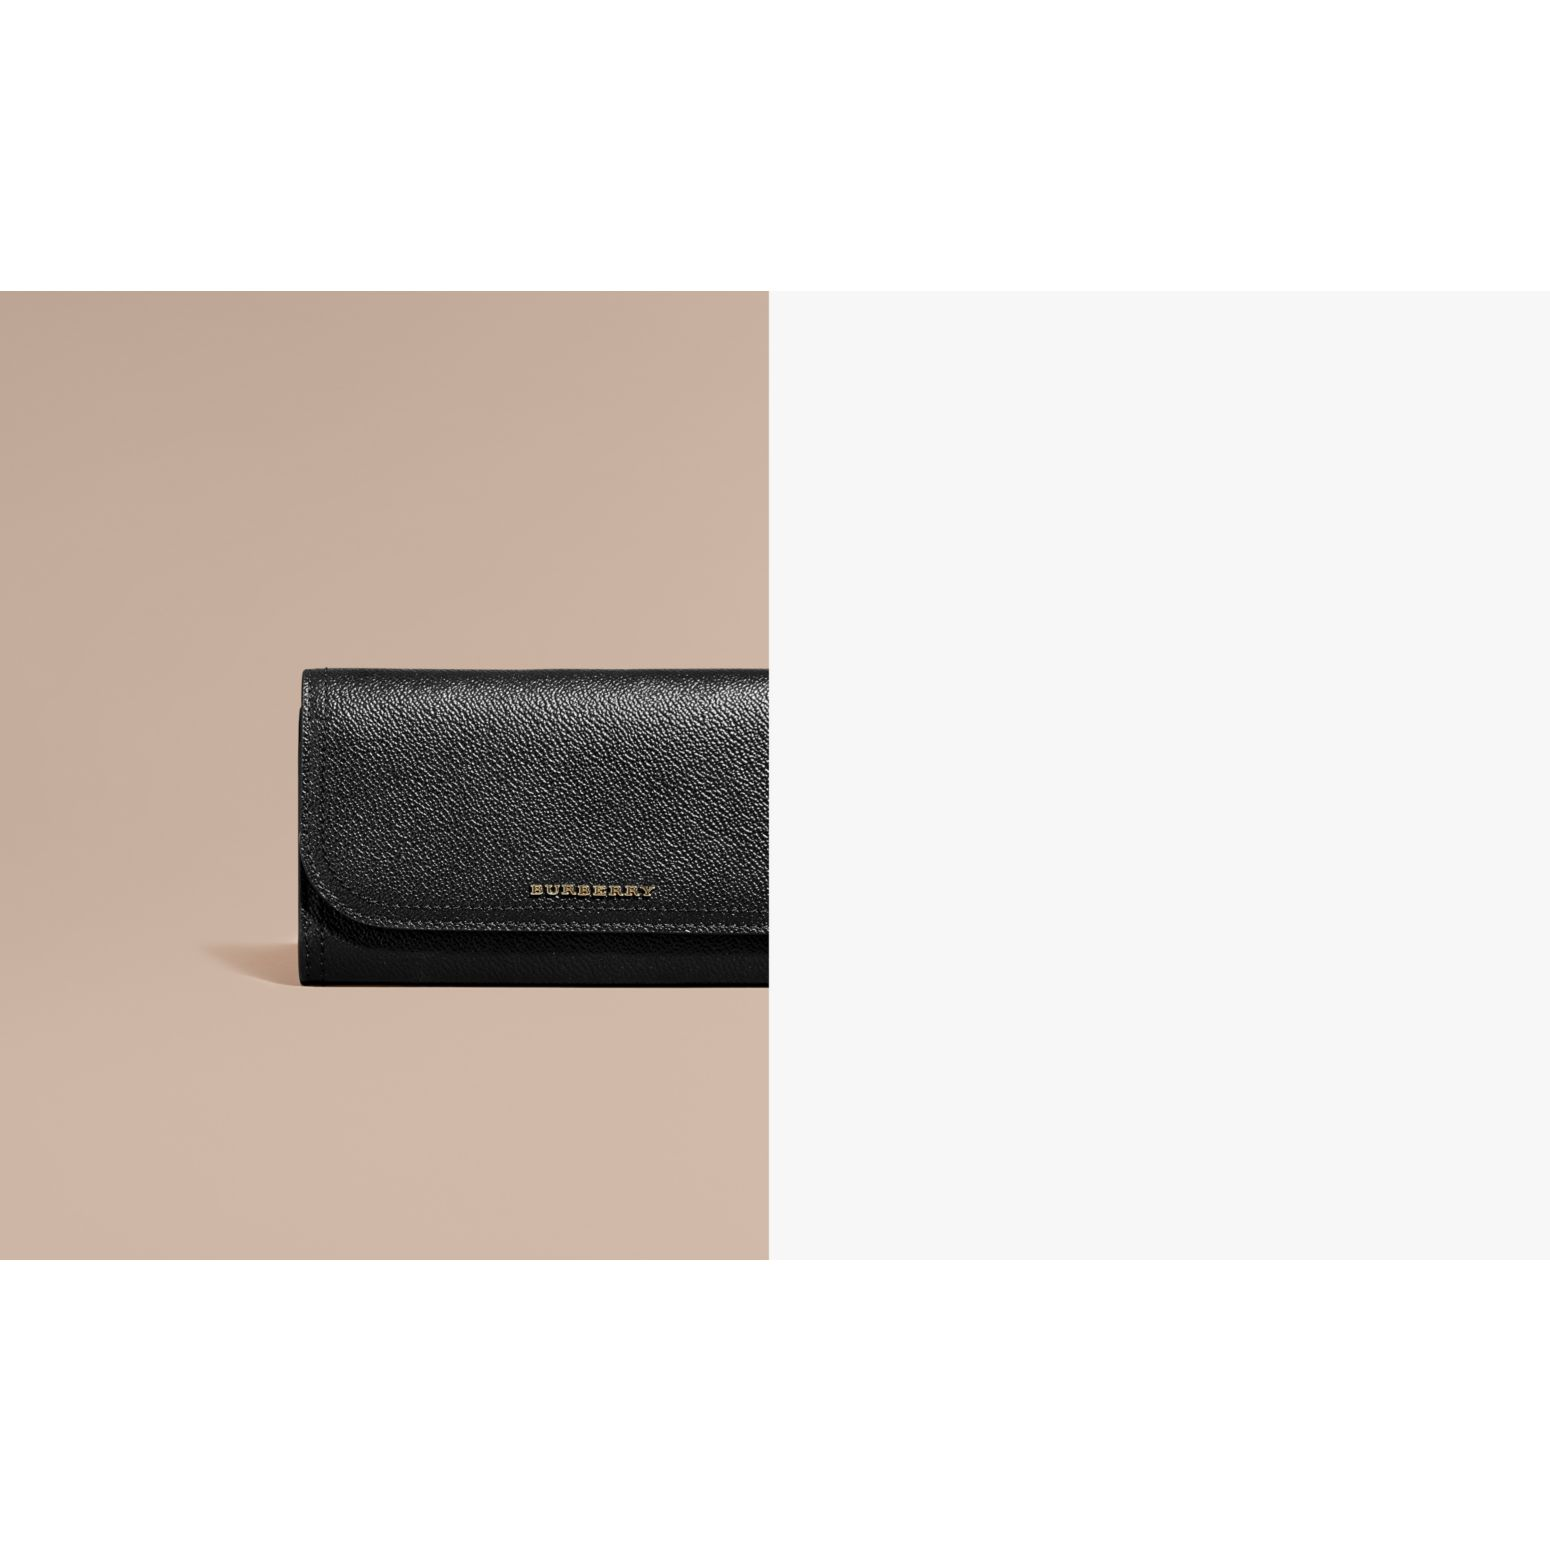 Grainy Leather Slim Continental Wallet in Black - Women | Burberry - gallery image 2